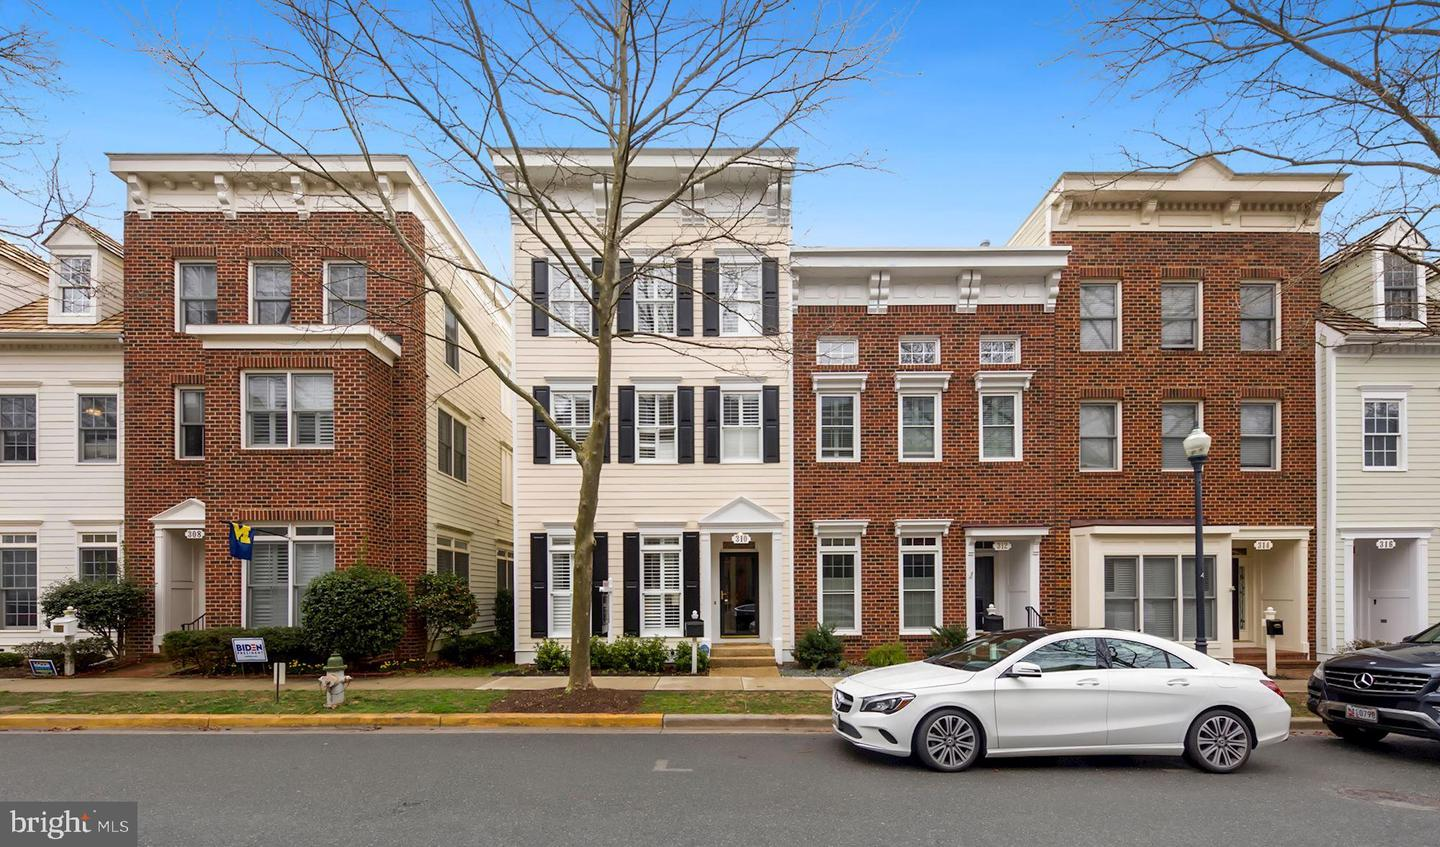 310 INSPIRATION LN, GAITHERSBURG, Maryland 20878, 3 Bedrooms Bedrooms, ,5 BathroomsBathrooms,Townhouse,For Sale,310 INSPIRATION LN,MDMC747348